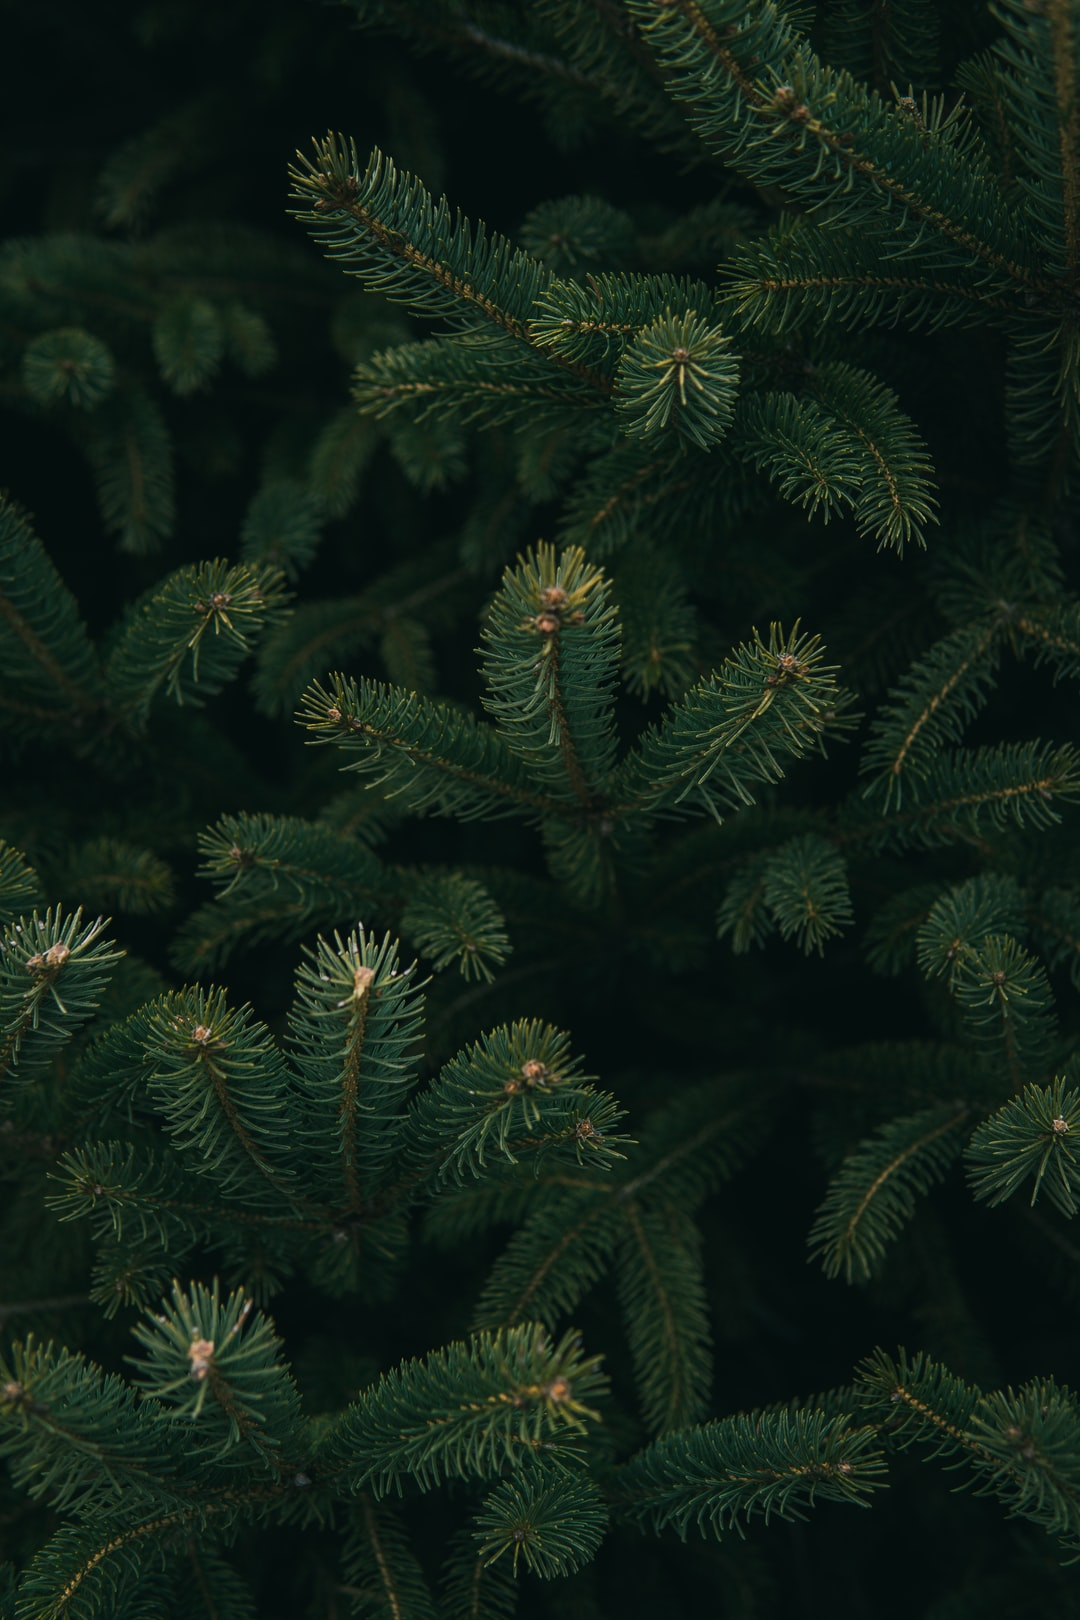 Christmas tree pictures hq download free images on - Pine tree wallpaper iphone ...